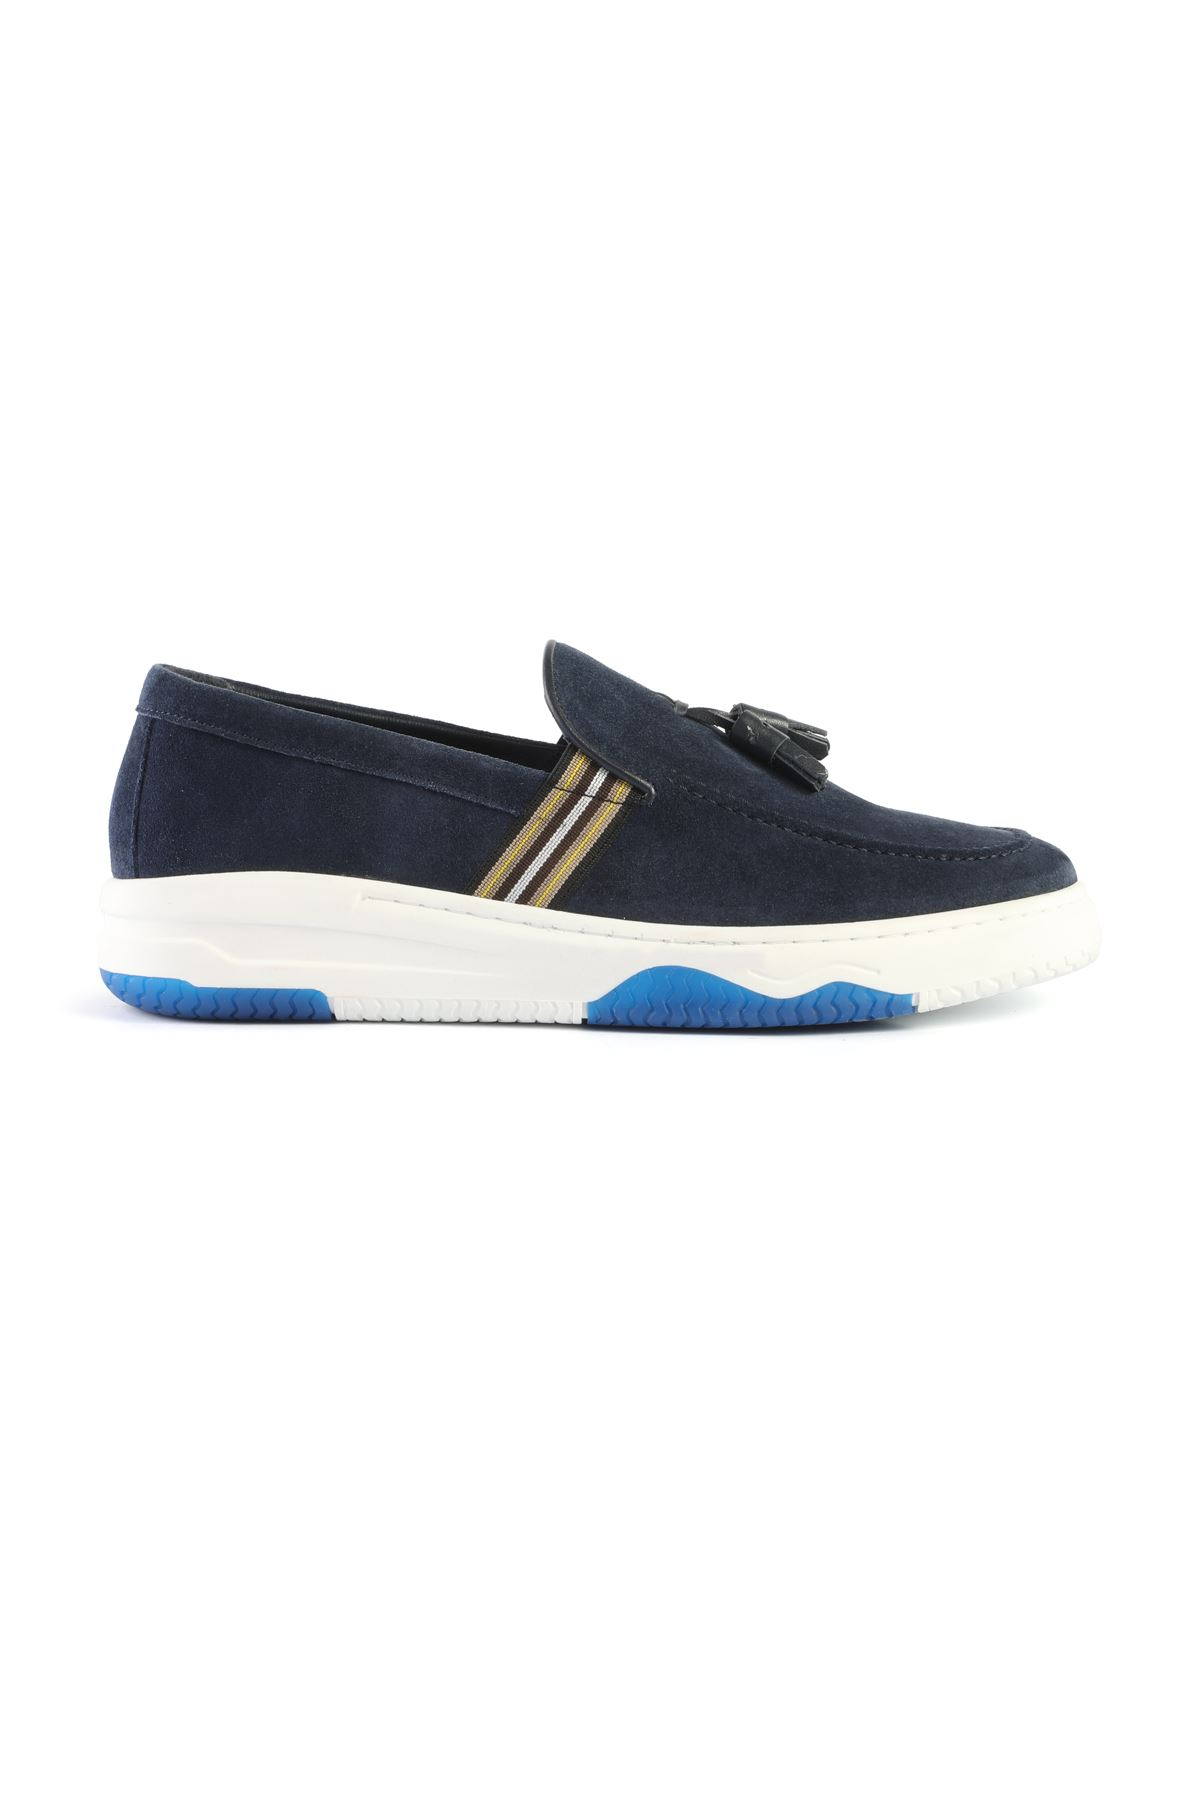 Libero L3232 Navy Blue Loafer Shoes